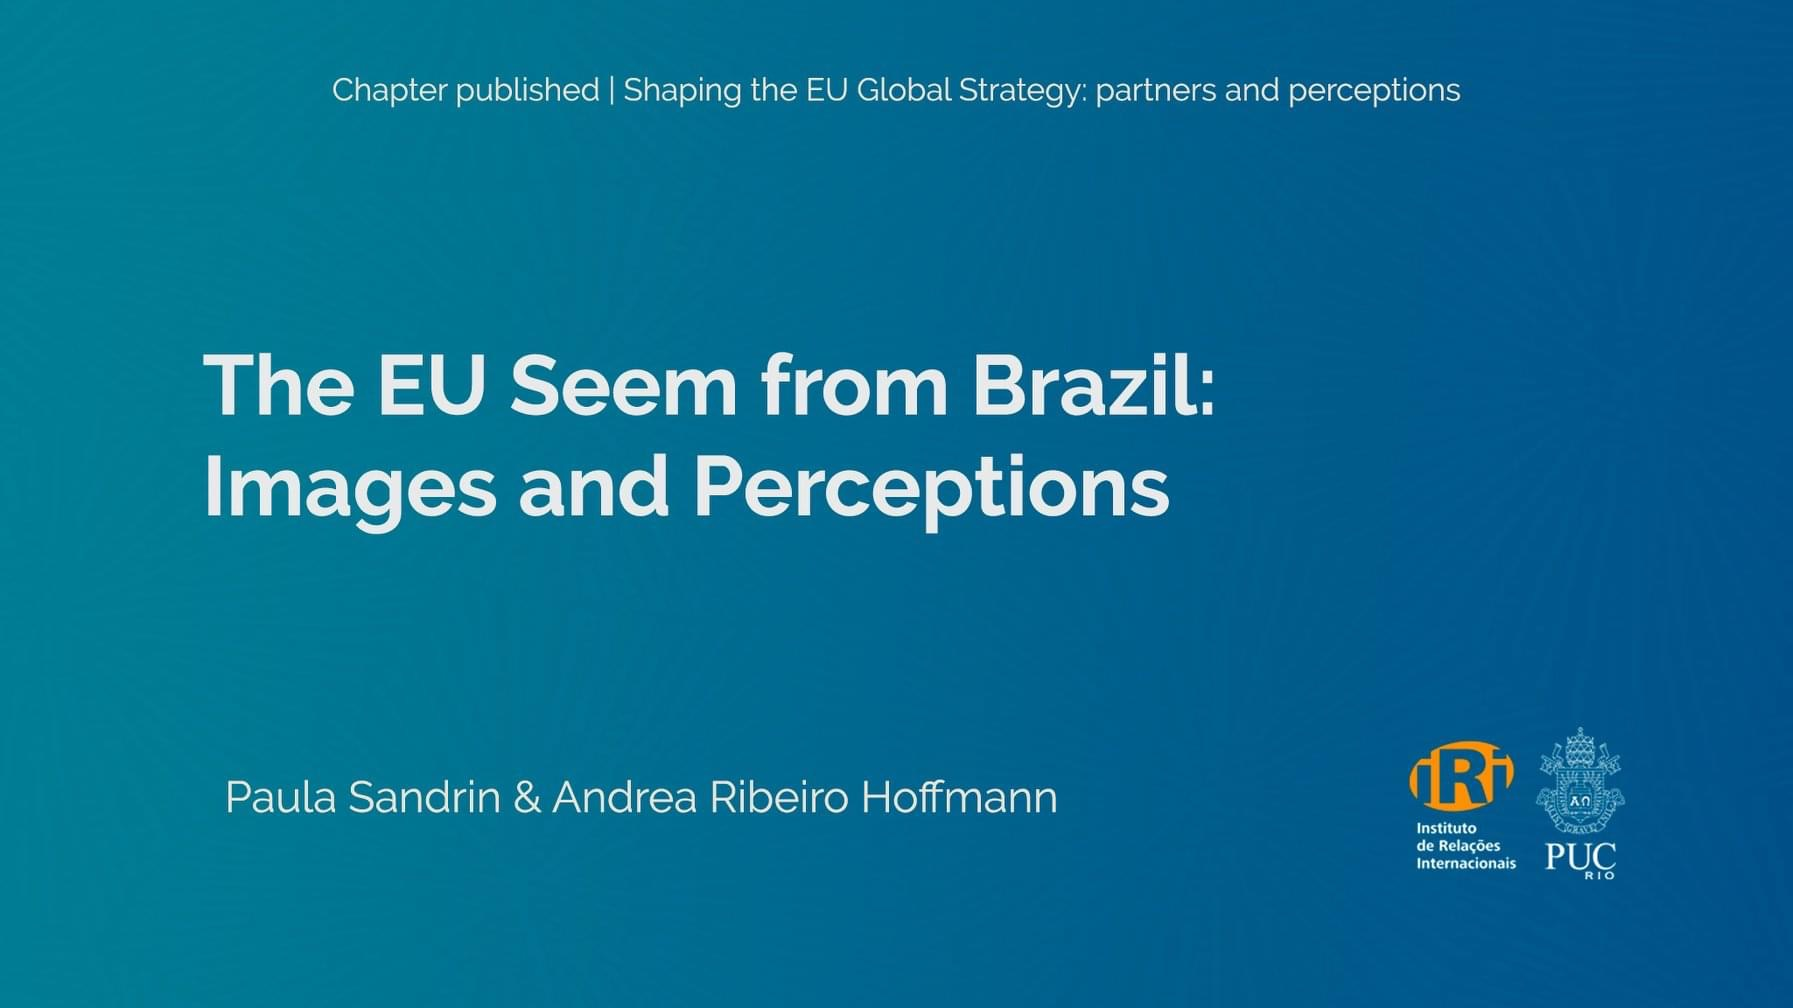 The EU seen from Brazil: Images and Perceptions